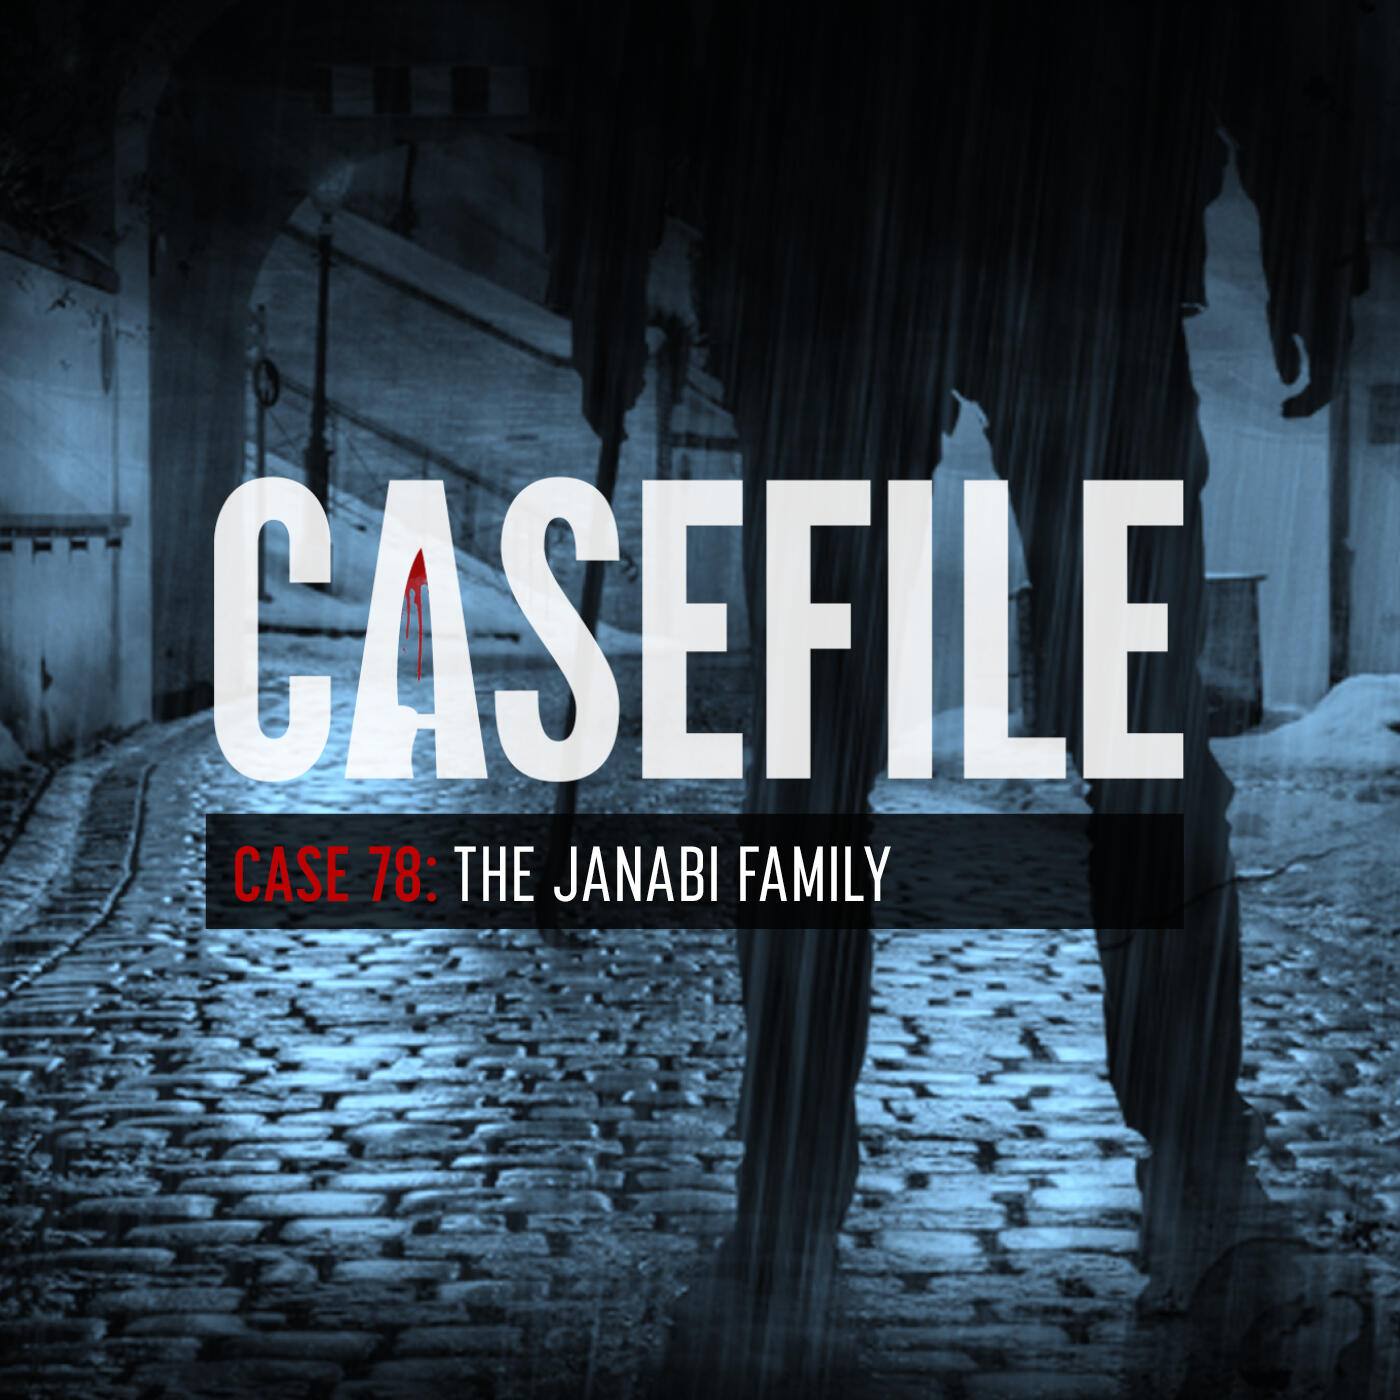 Case 78: The Janabi Family